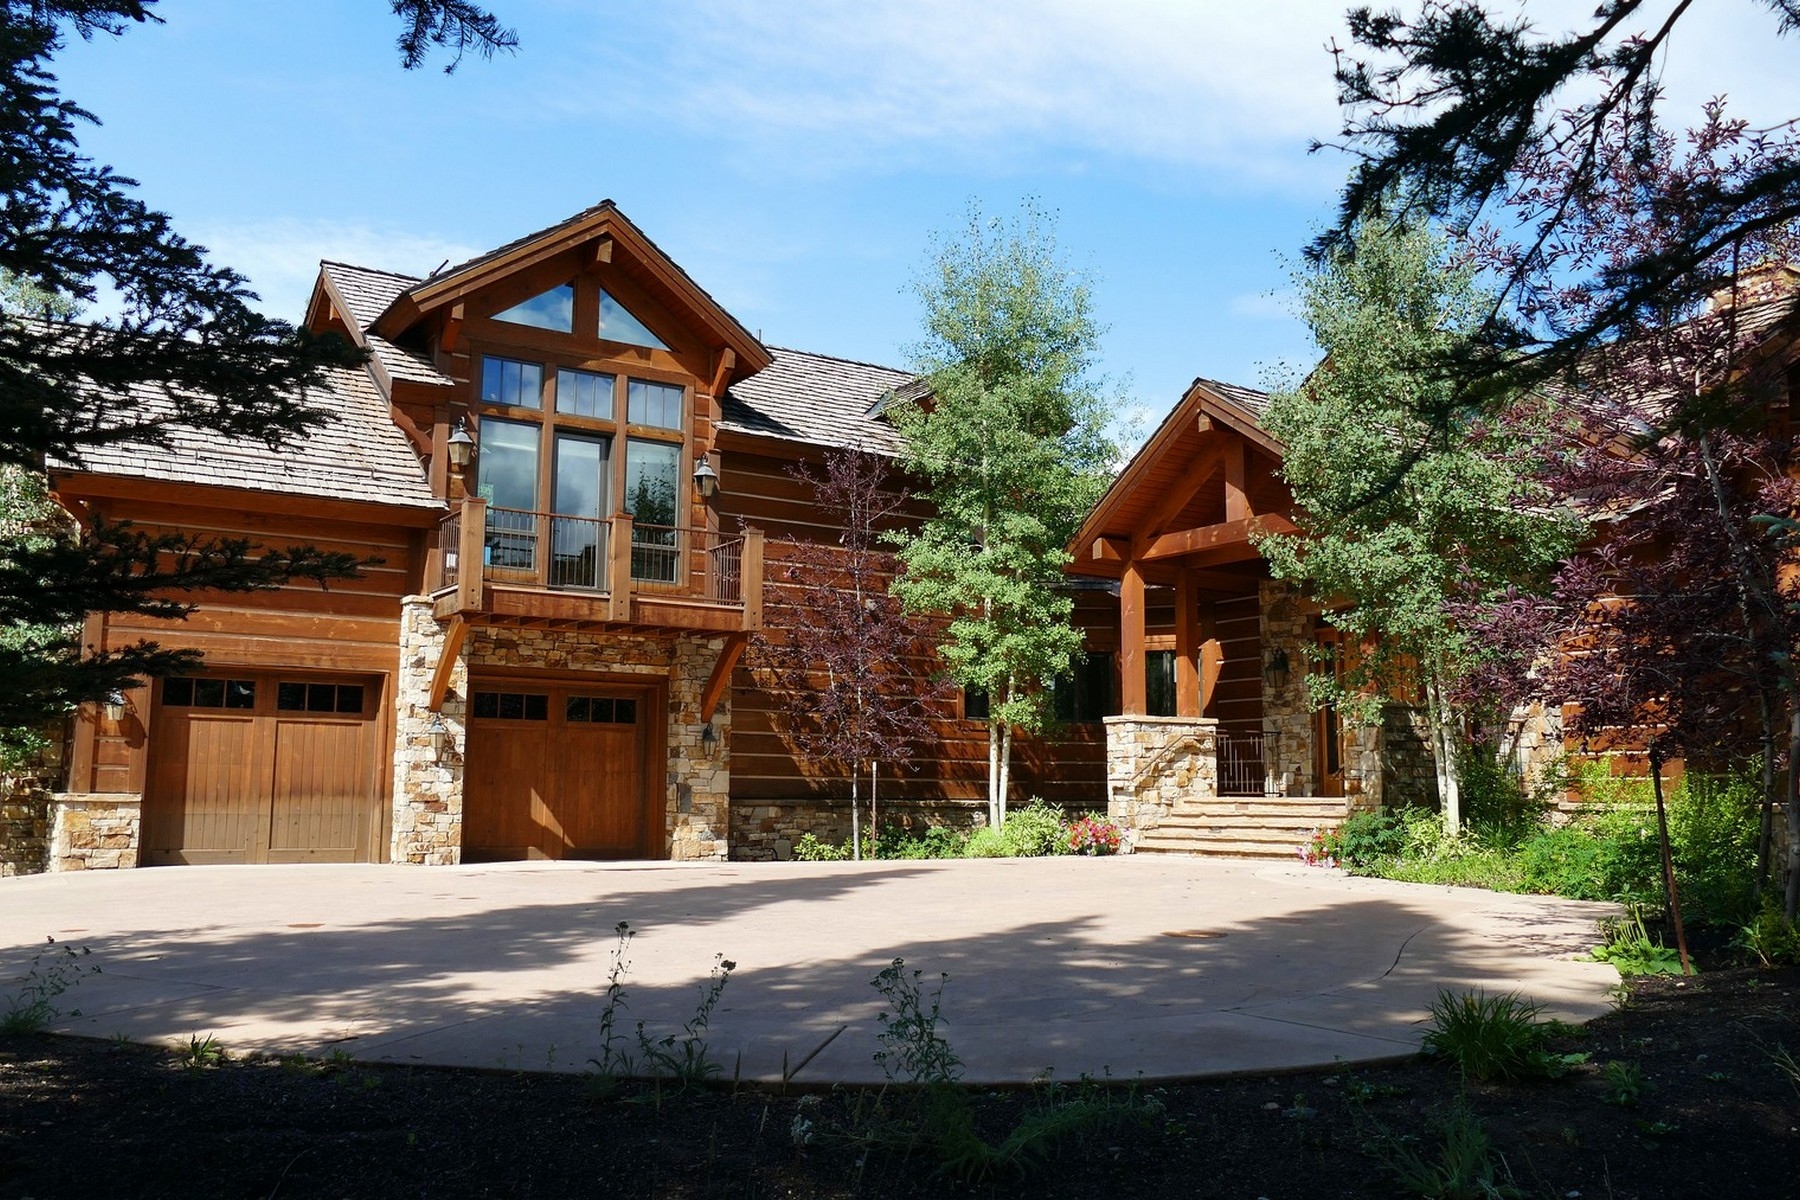 Single Family Home for Sale at 225 Benchmark Drive 225 Benchmark Drive Mountain Village Telluride, Colorado, 81435 United States